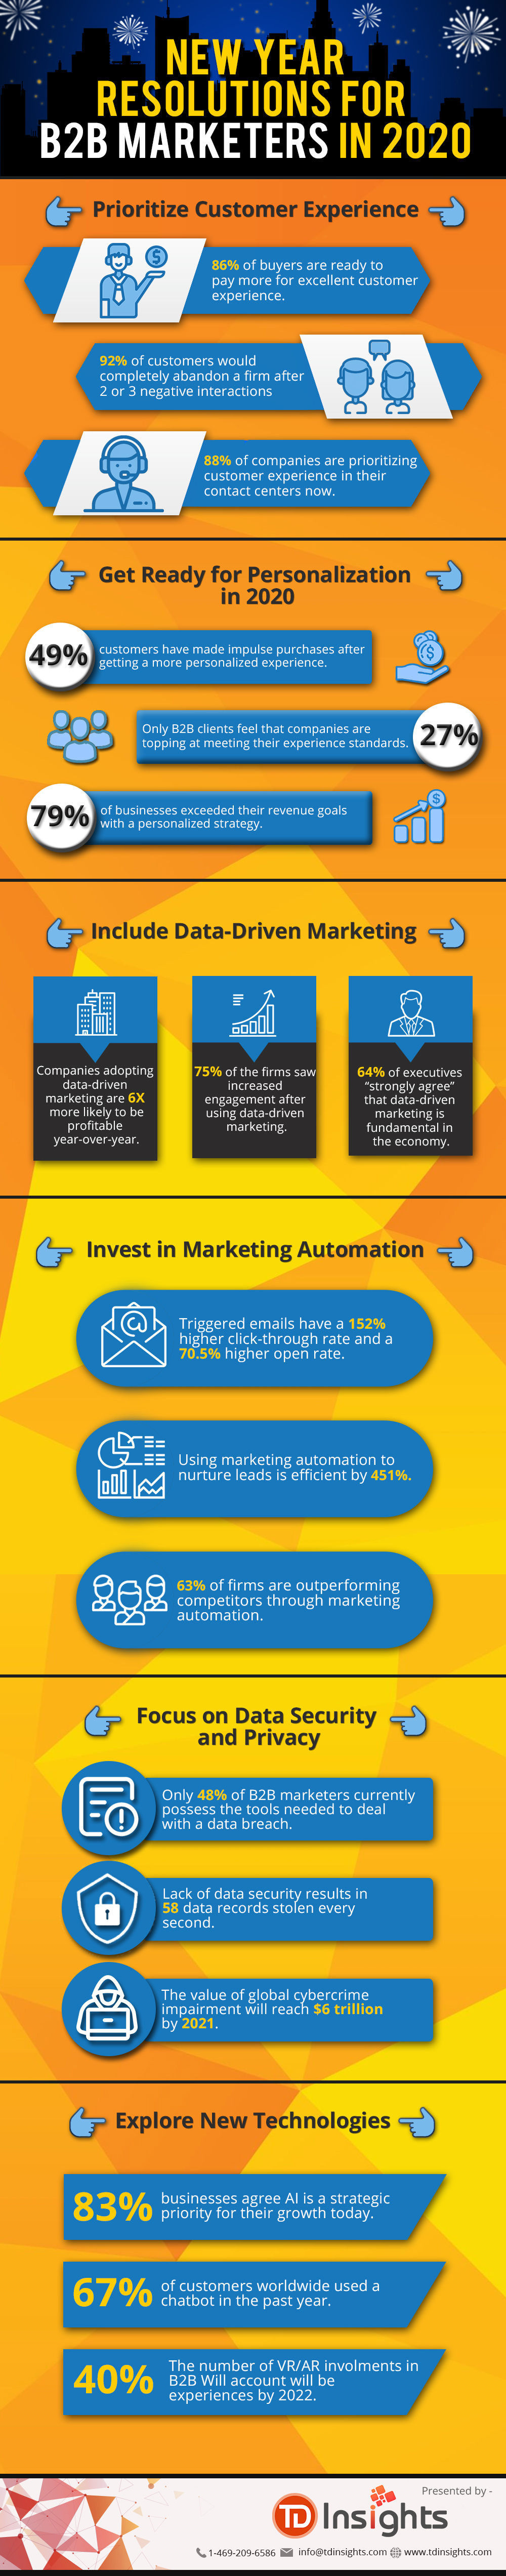 Infographic looks at evolving B2B marketing trends